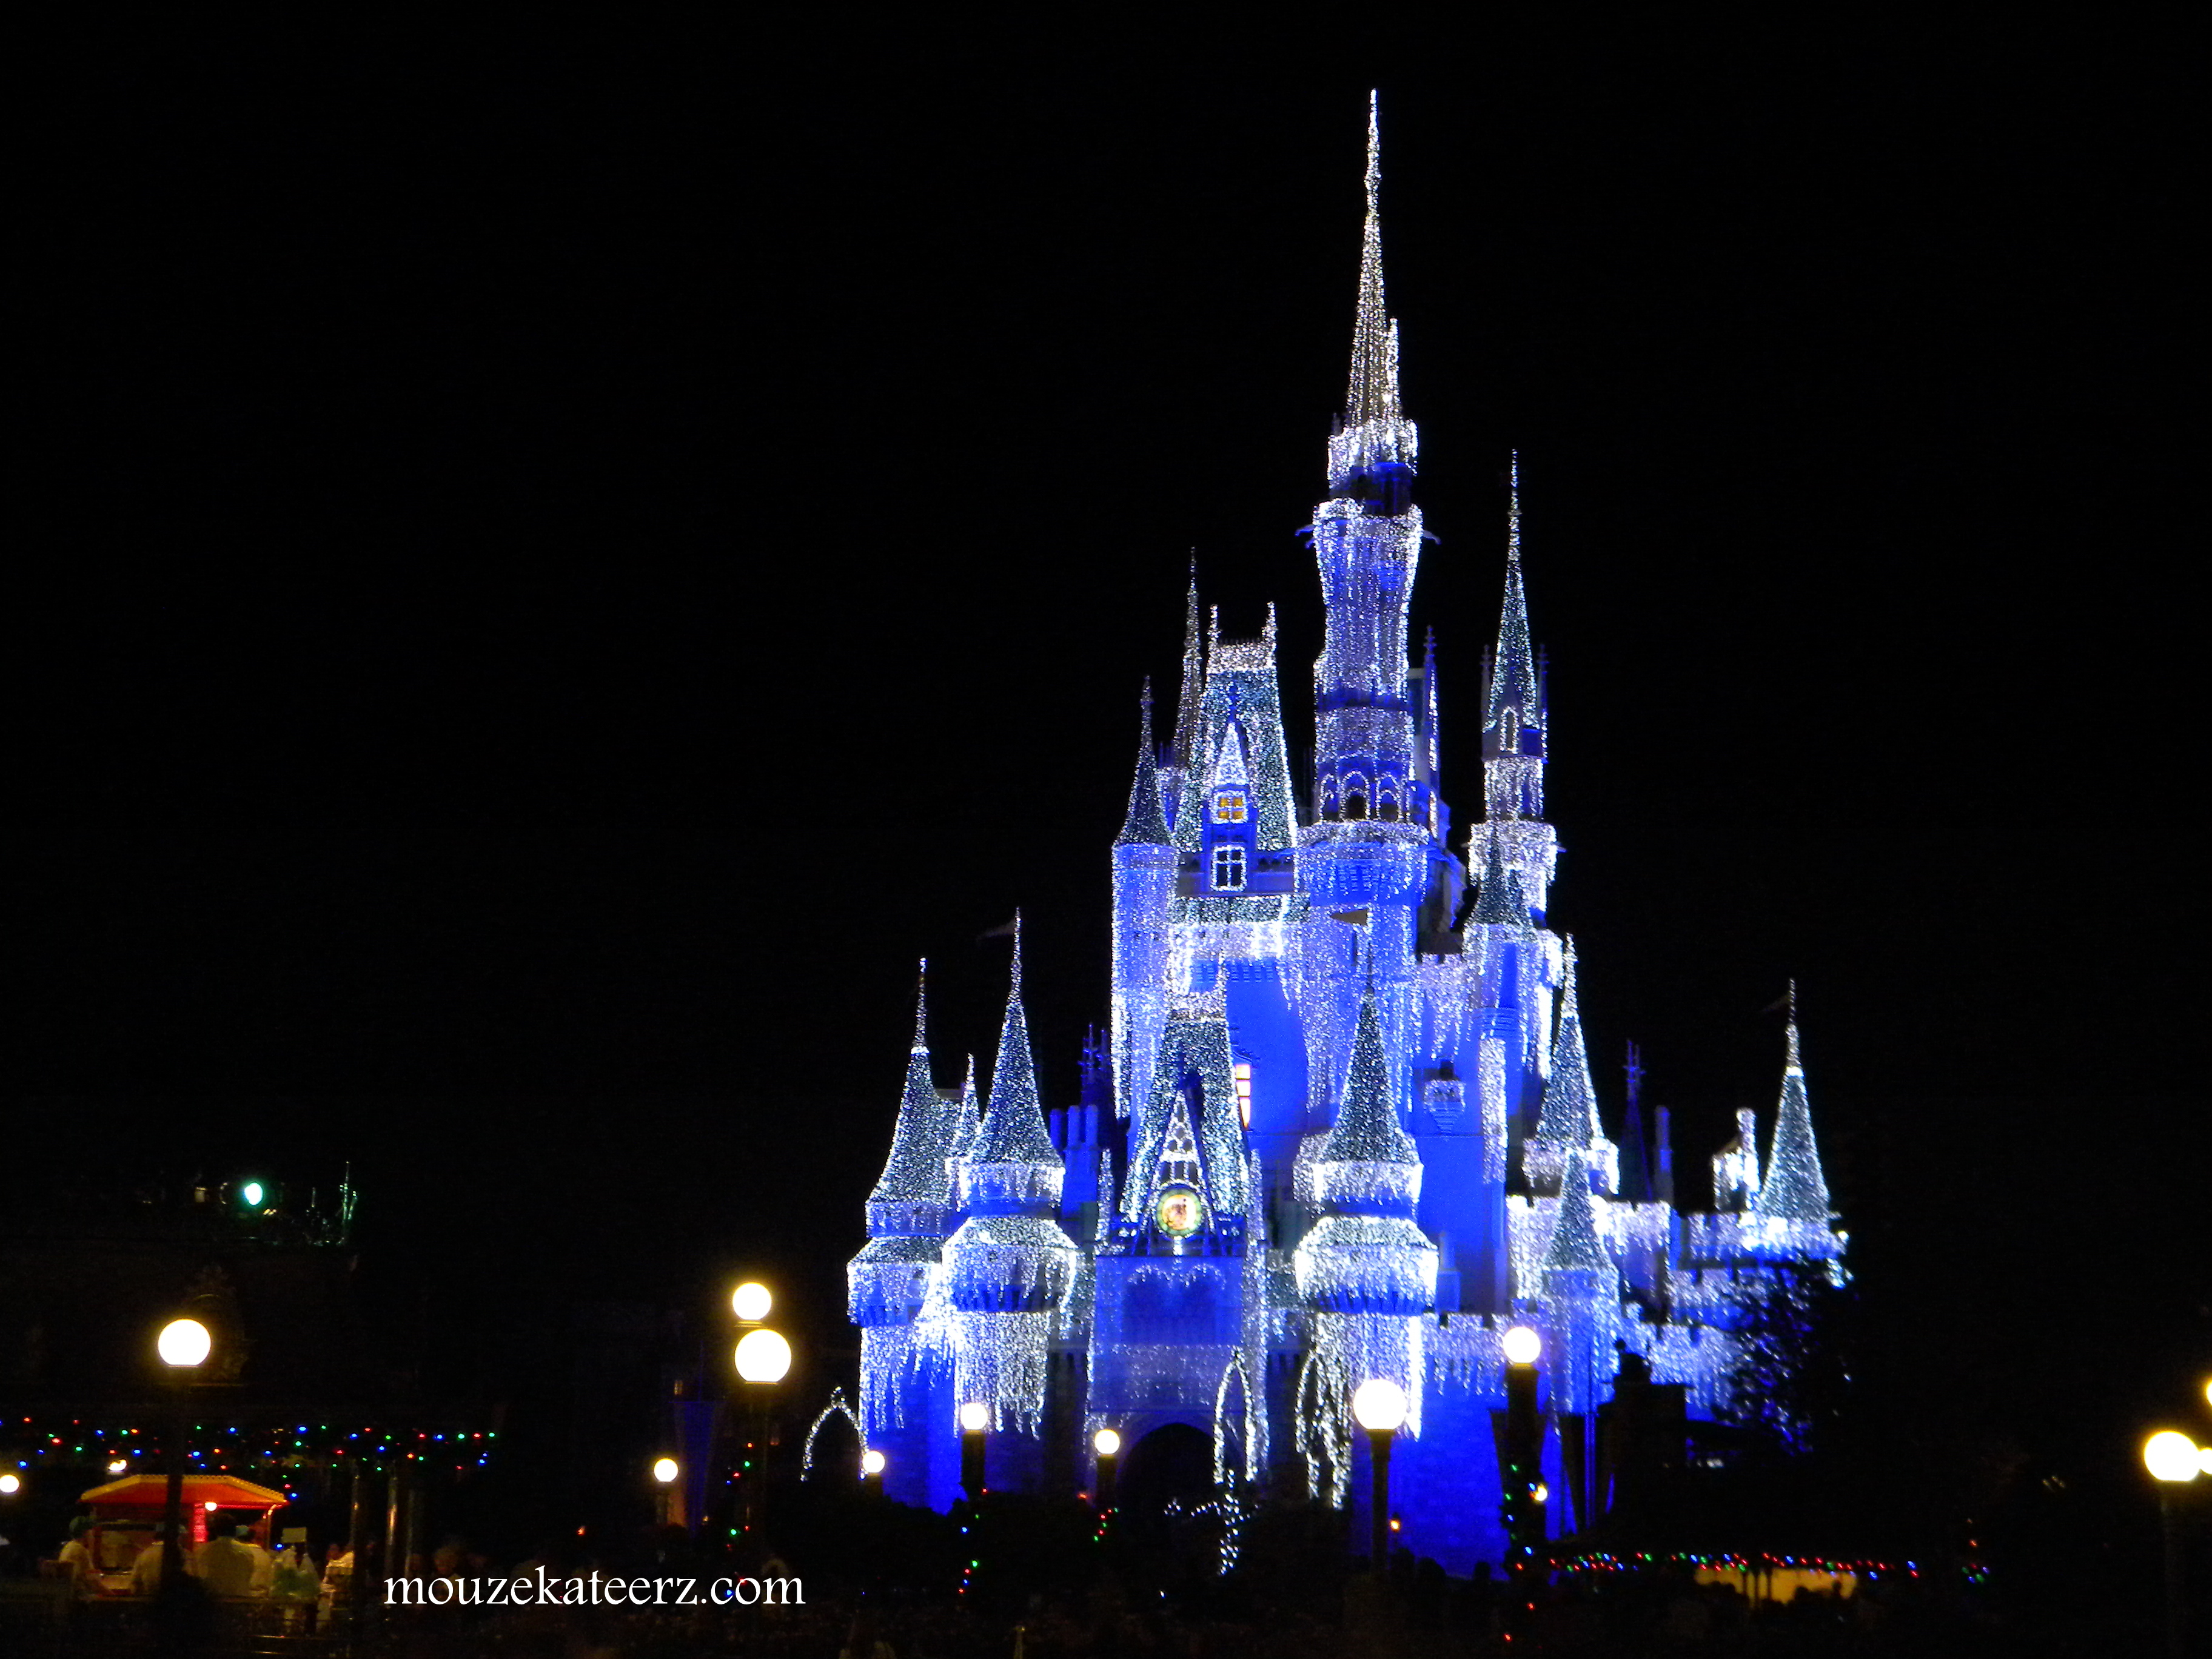 Cute Background Wallpaper For Computer Christmas Lights Animal Hd How To Survive Walt Disney World At Thanksgiving